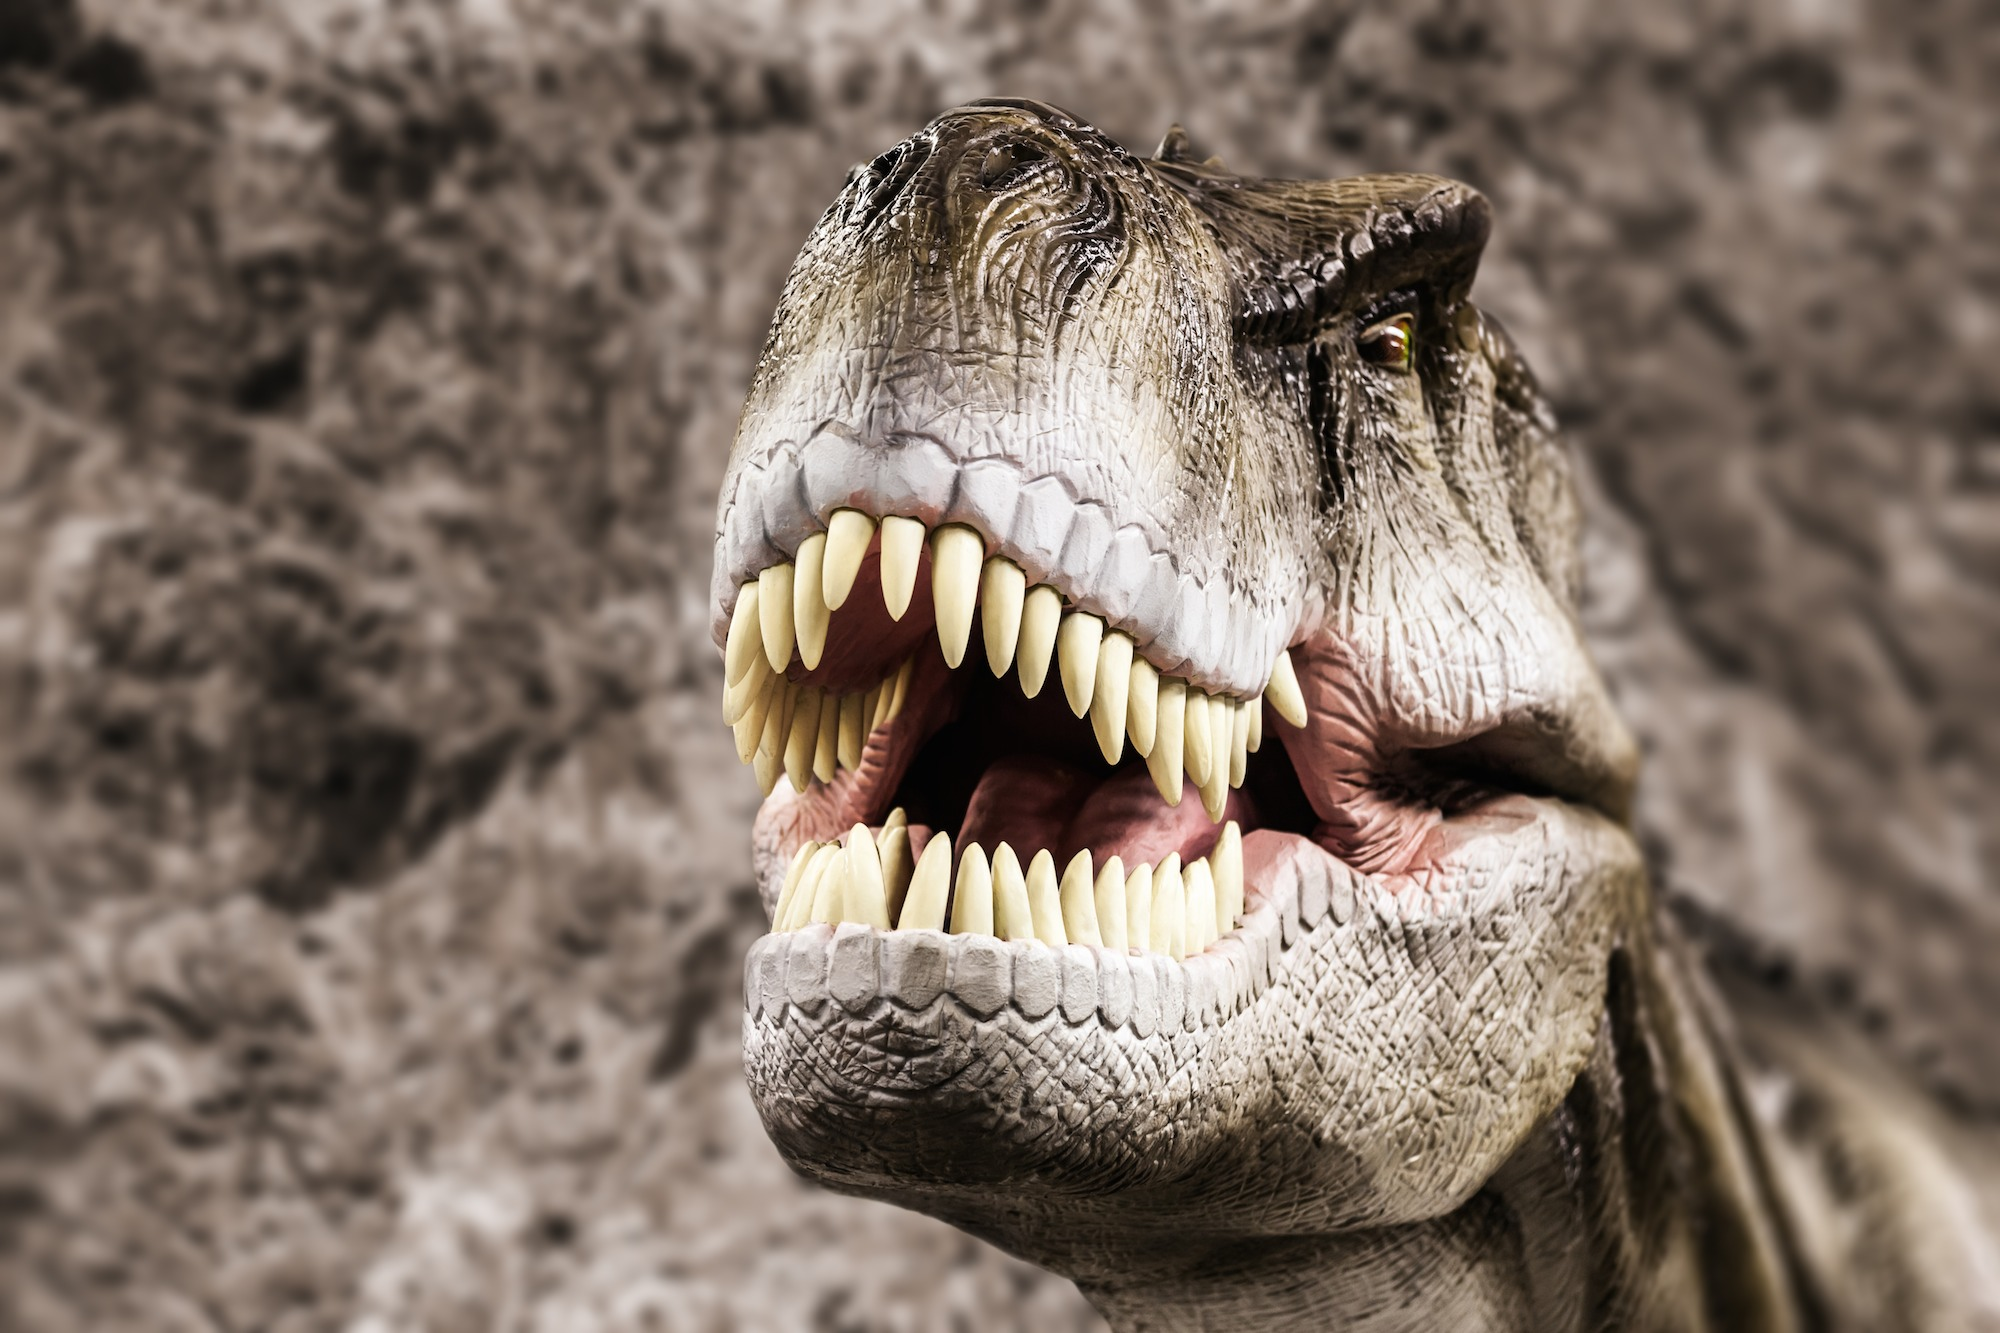 Hollywood smiles created by our reptilian ancestors: scientists believe the attractiveness of a nice smile may go back to a time before mammals.